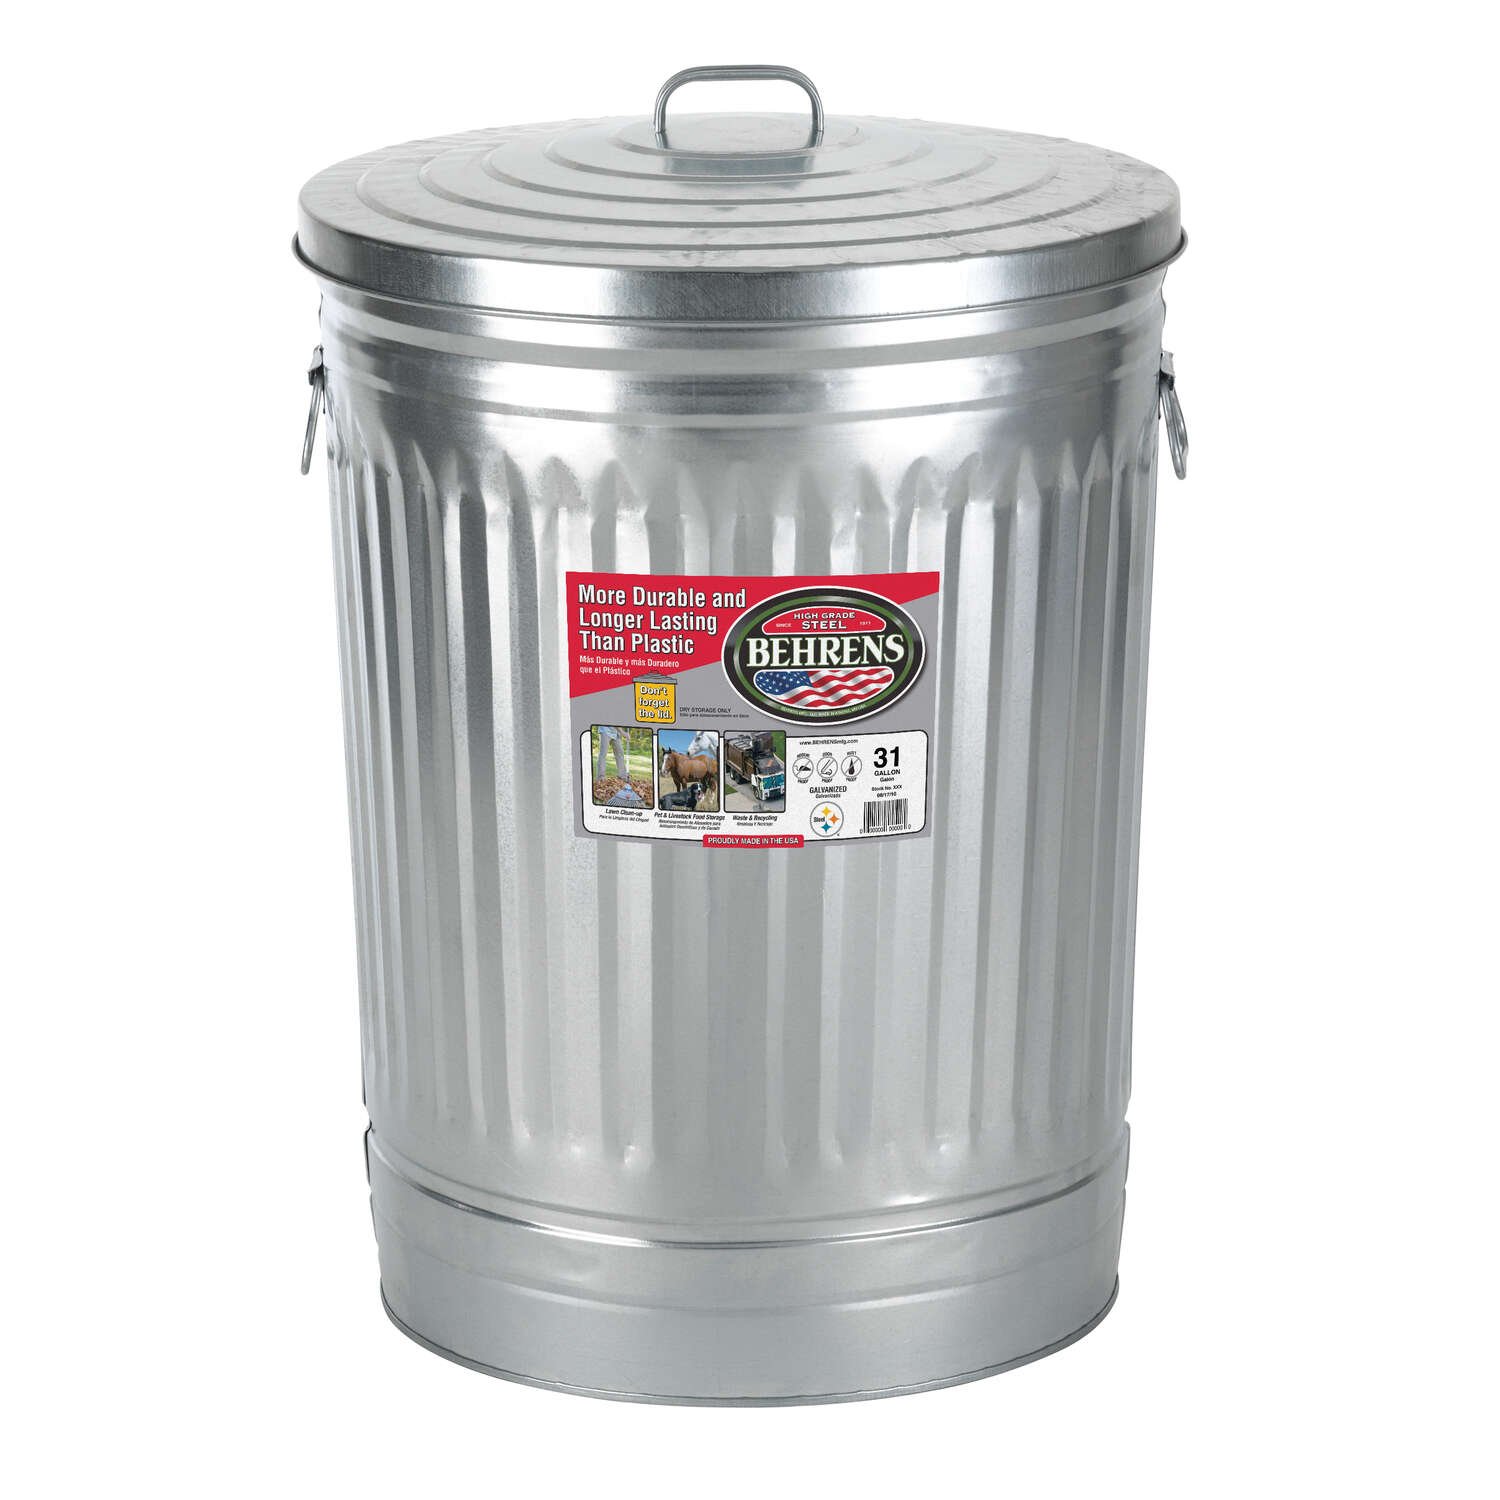 Behrens 31 Gal Galvanized Steel Garbage Can Lid Included Animal Proof Animal Resistant Ace Hardware